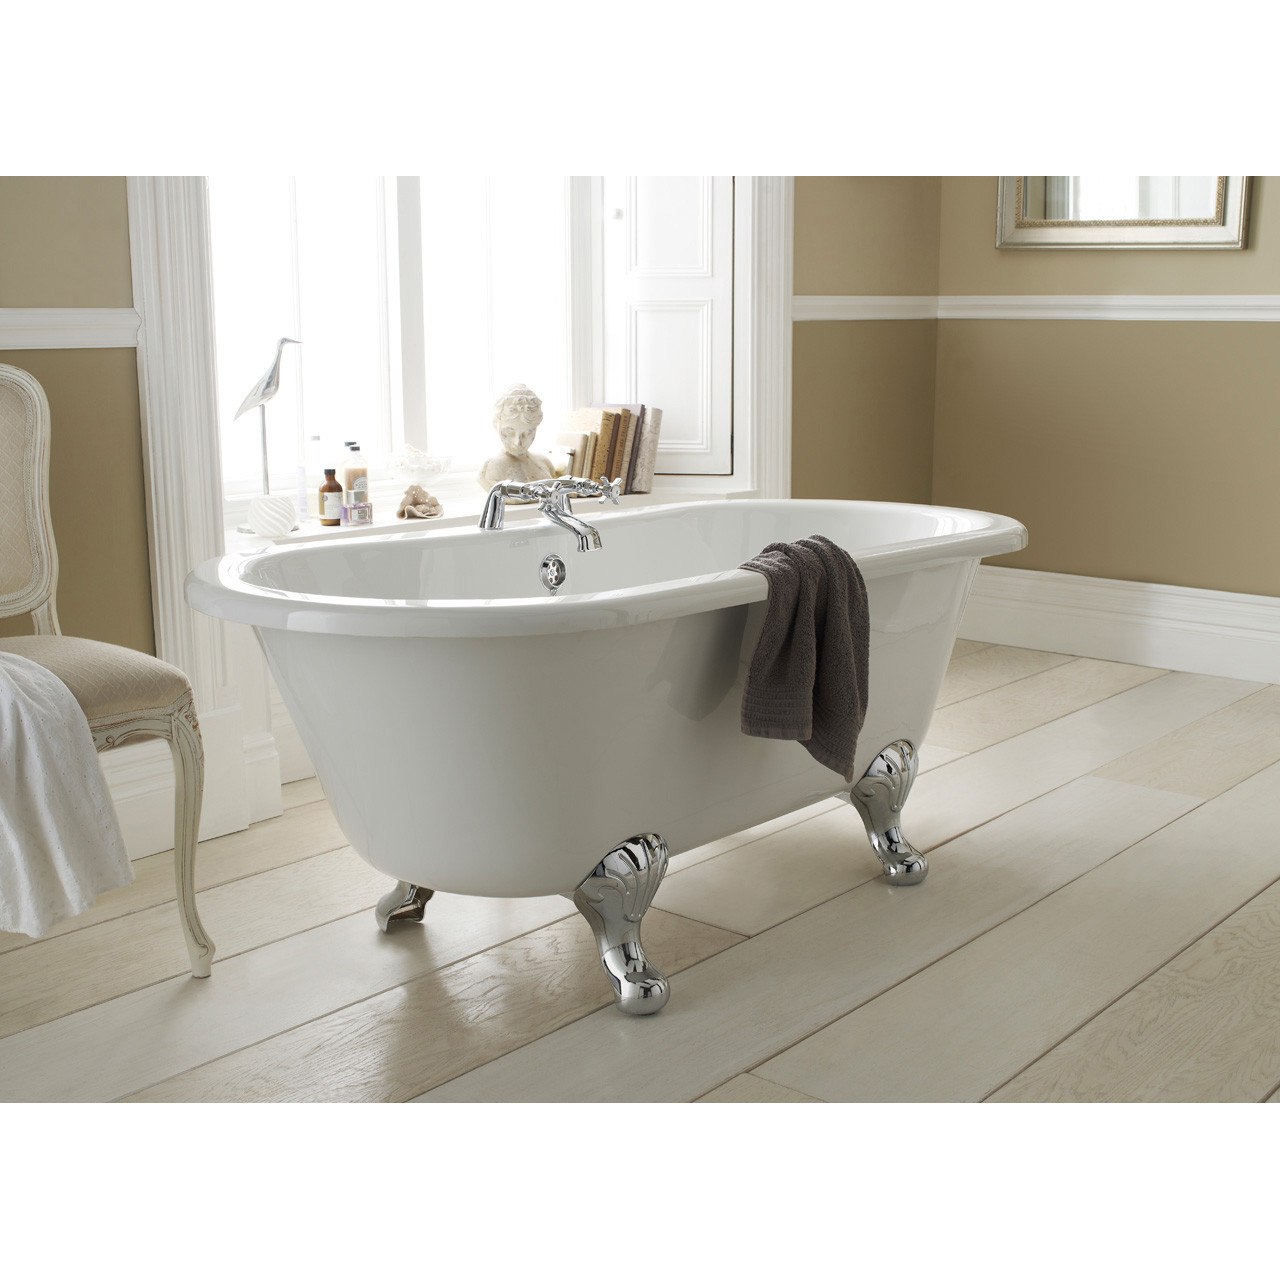 Premier White Grosvenor 1500 Double Ended Freestanding Bath with Deacon Legs - RL1501M1